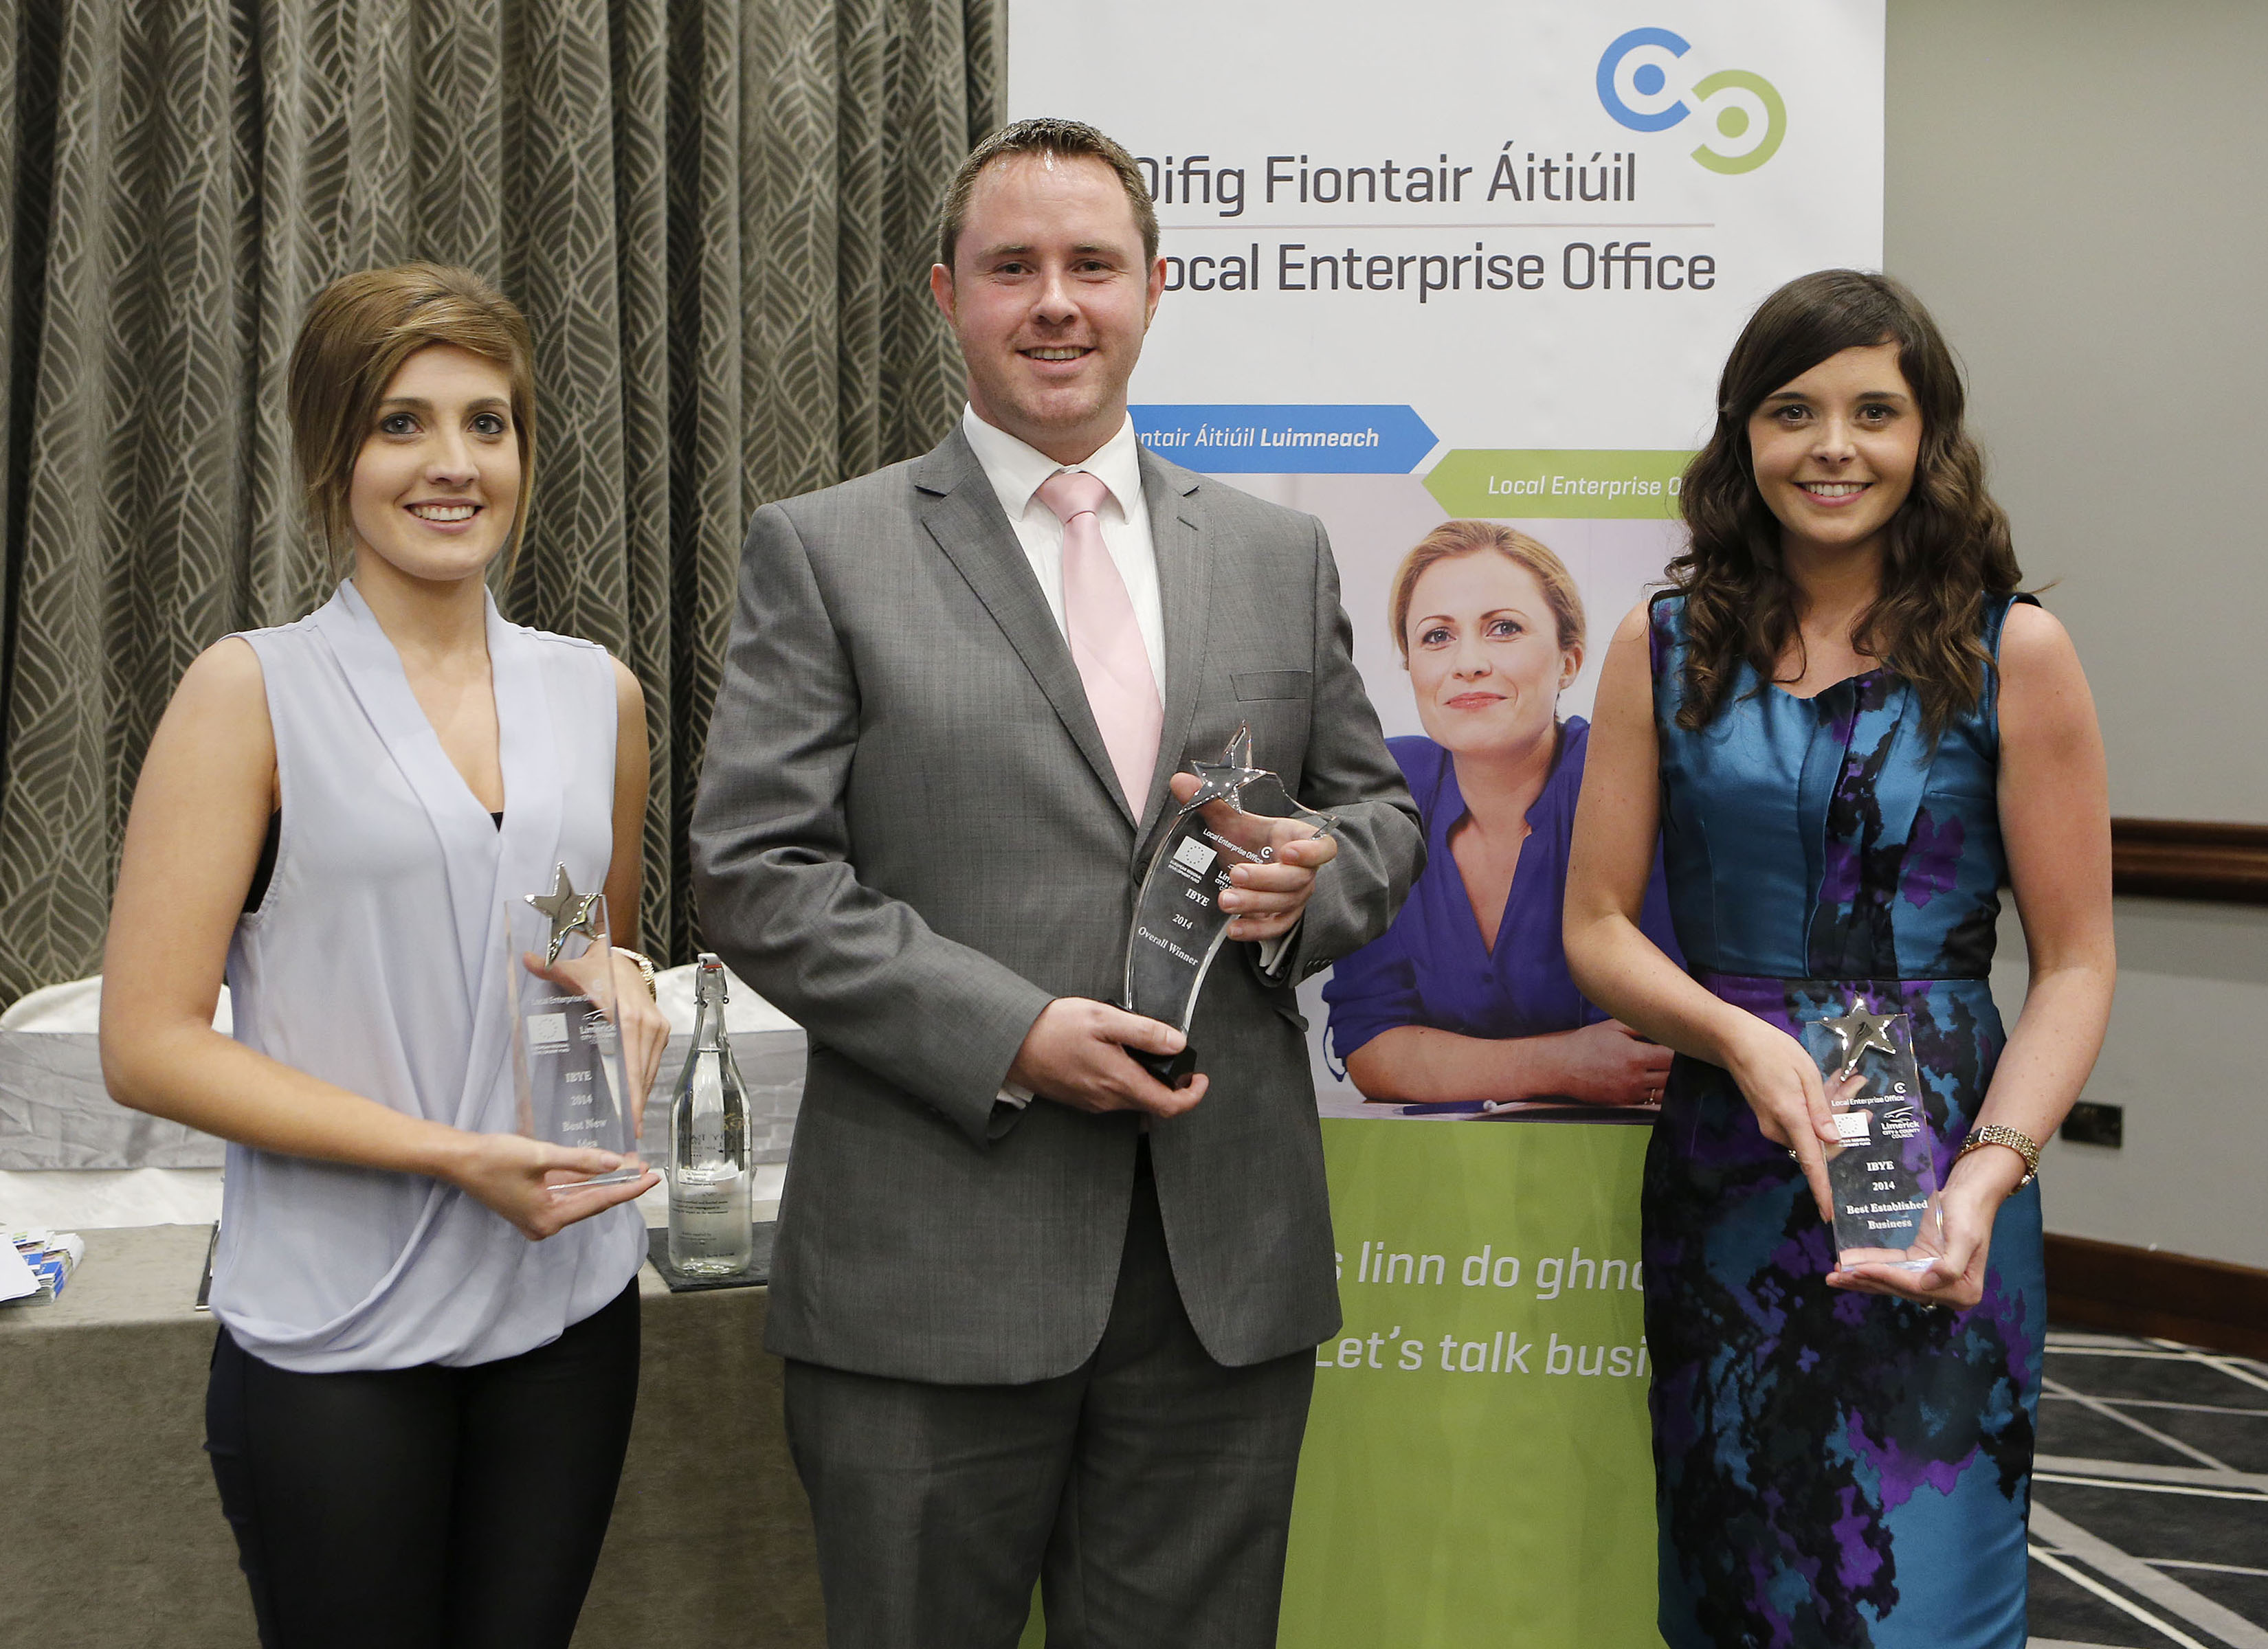 Pictured are Aislinn O'Flynn of Sensomi, Dr. Paddy Finn of Electricity Exchange, Aisling Maher of Aisling Maher Fashion Designs